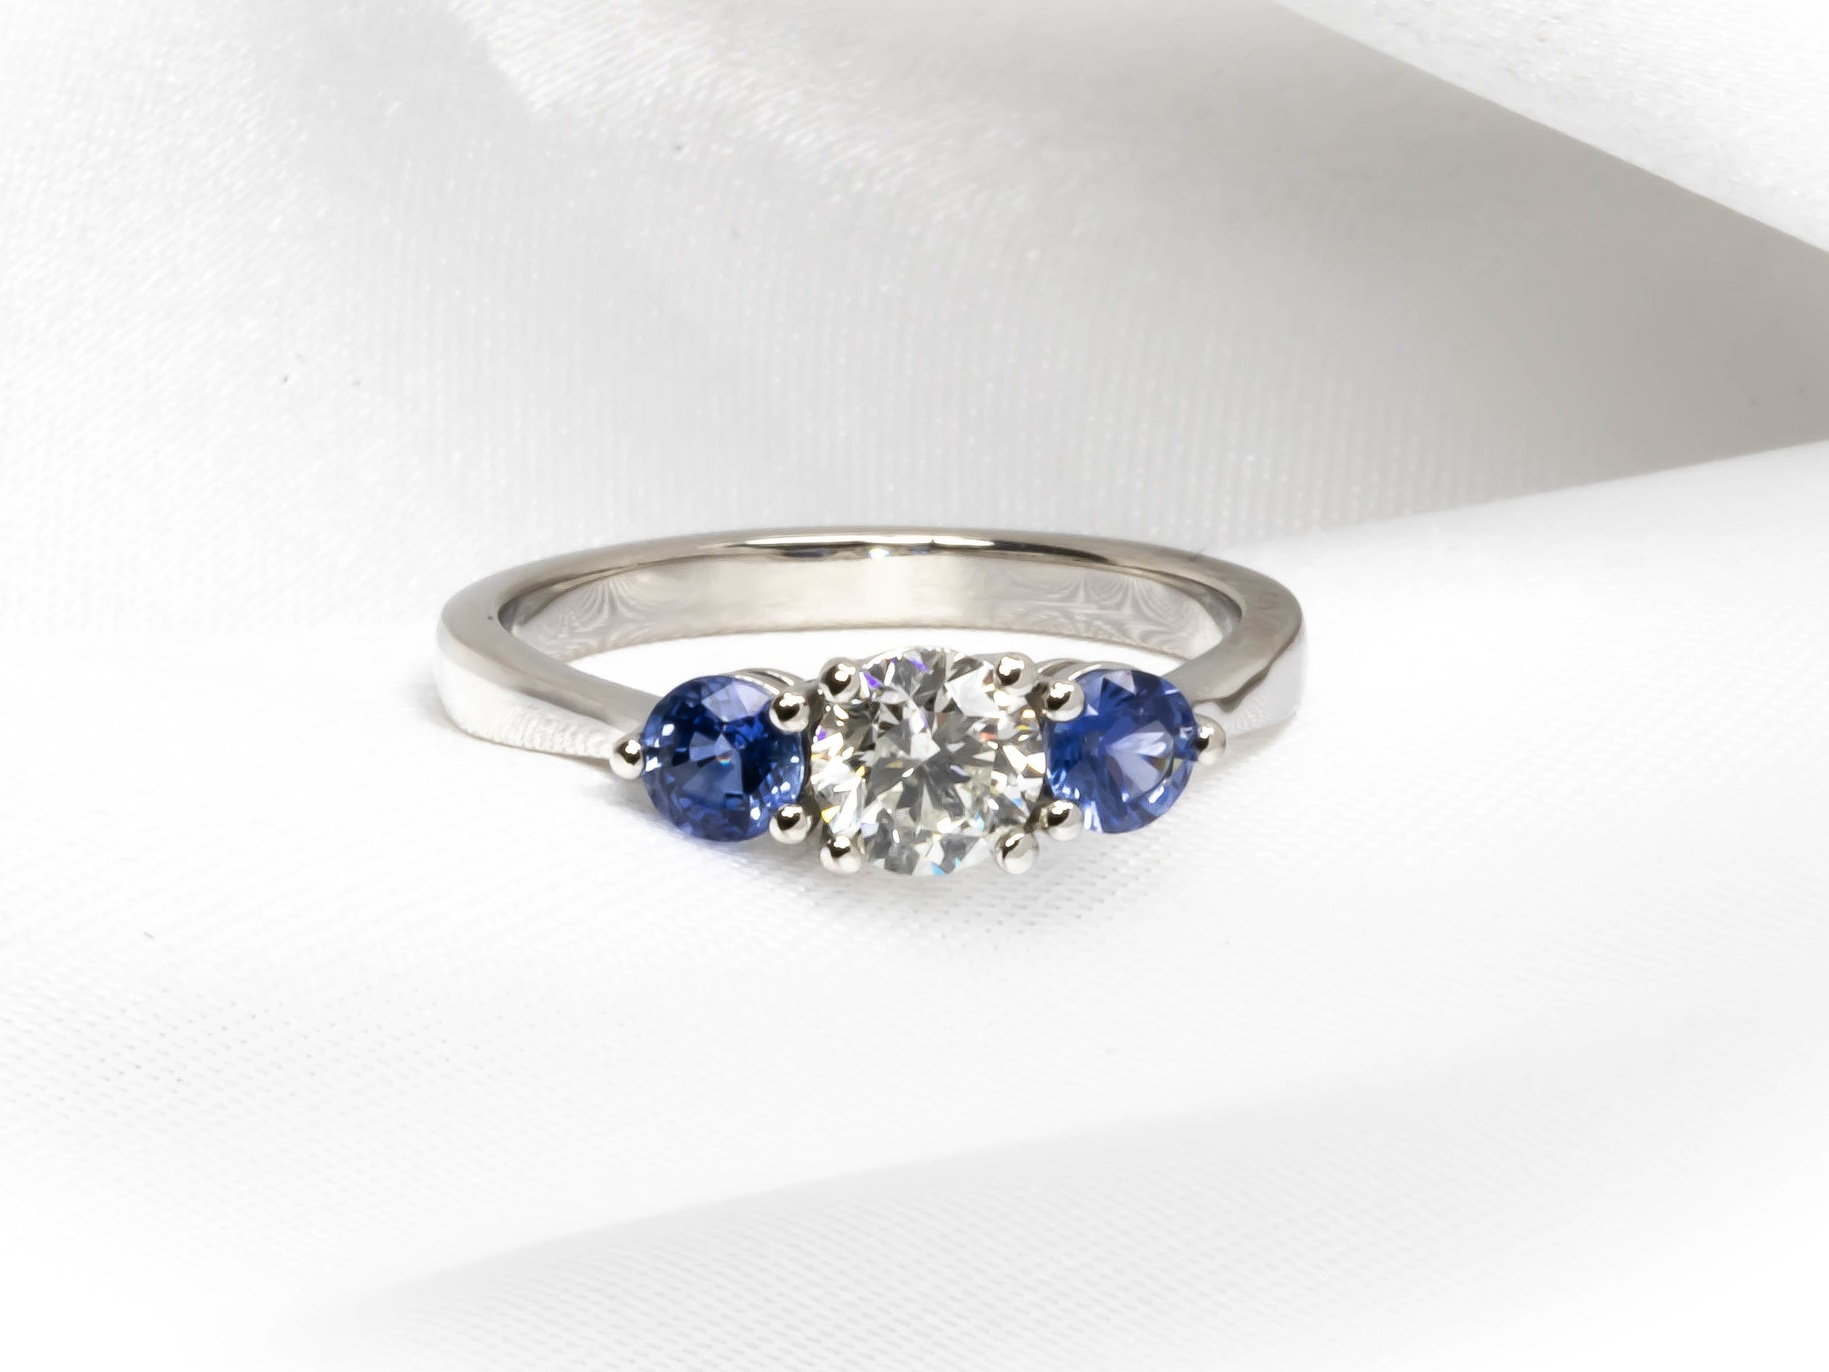 Modern style claw set platinum mounted diamond and sapphire three stone ring. Made in Chichester, England.